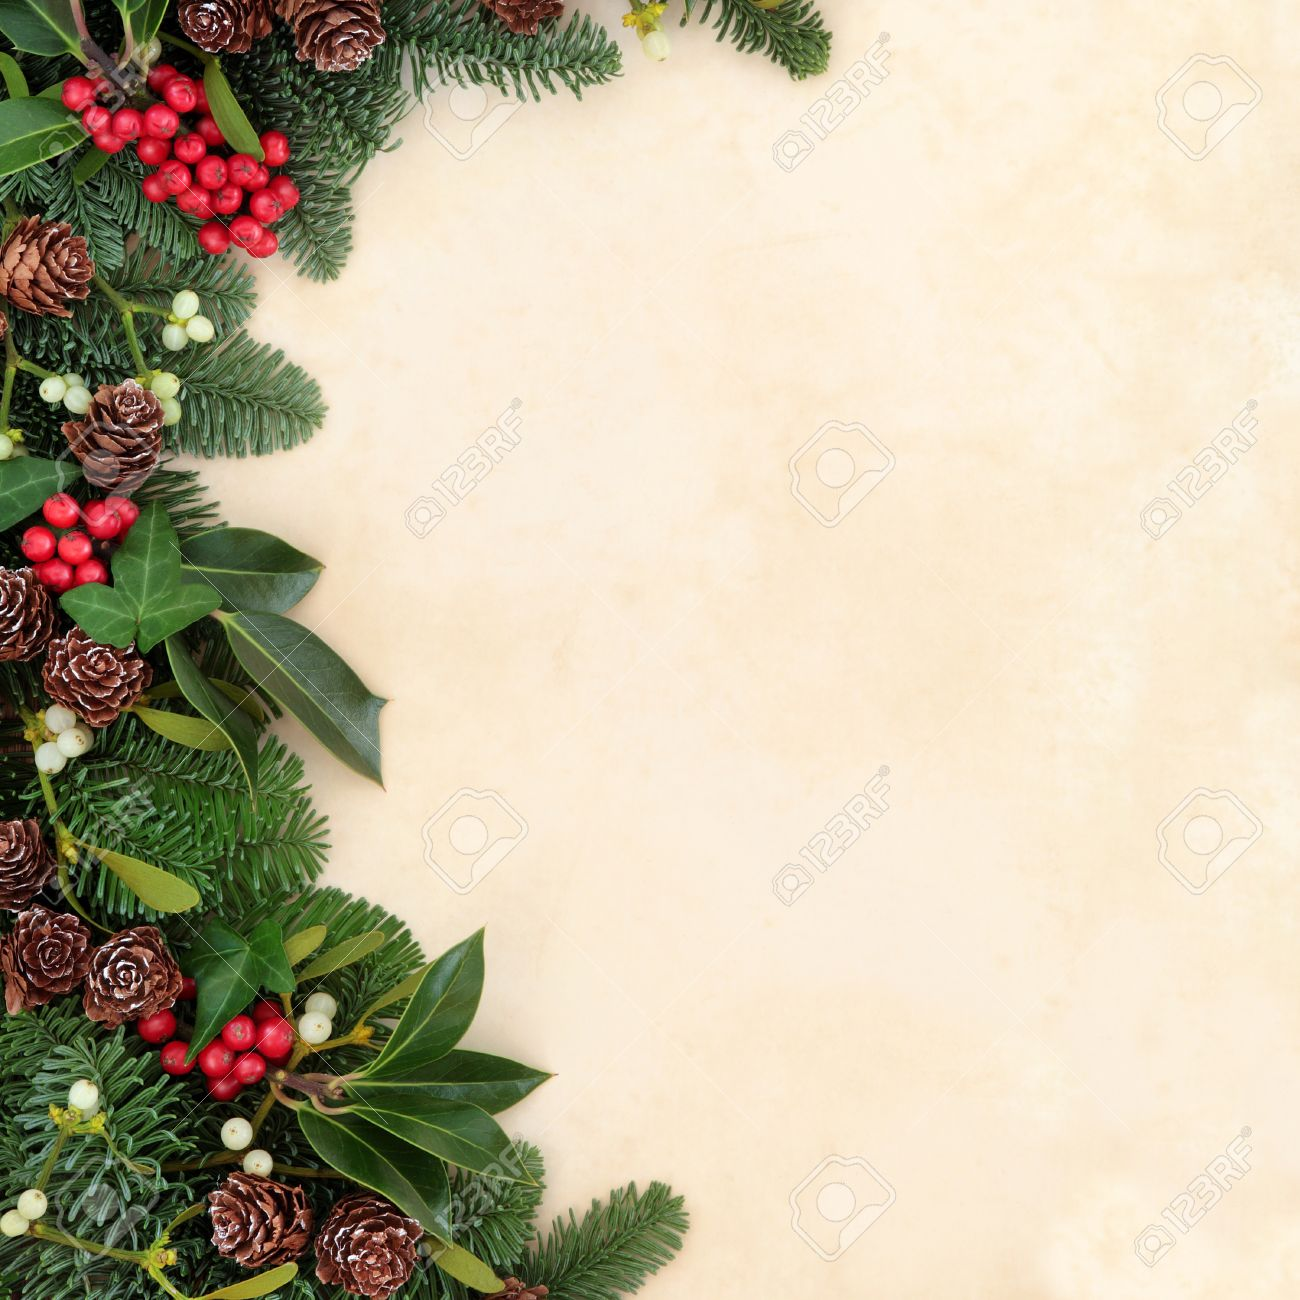 Christmas And Winter Background Border With Fir, Holly, Ivy ...